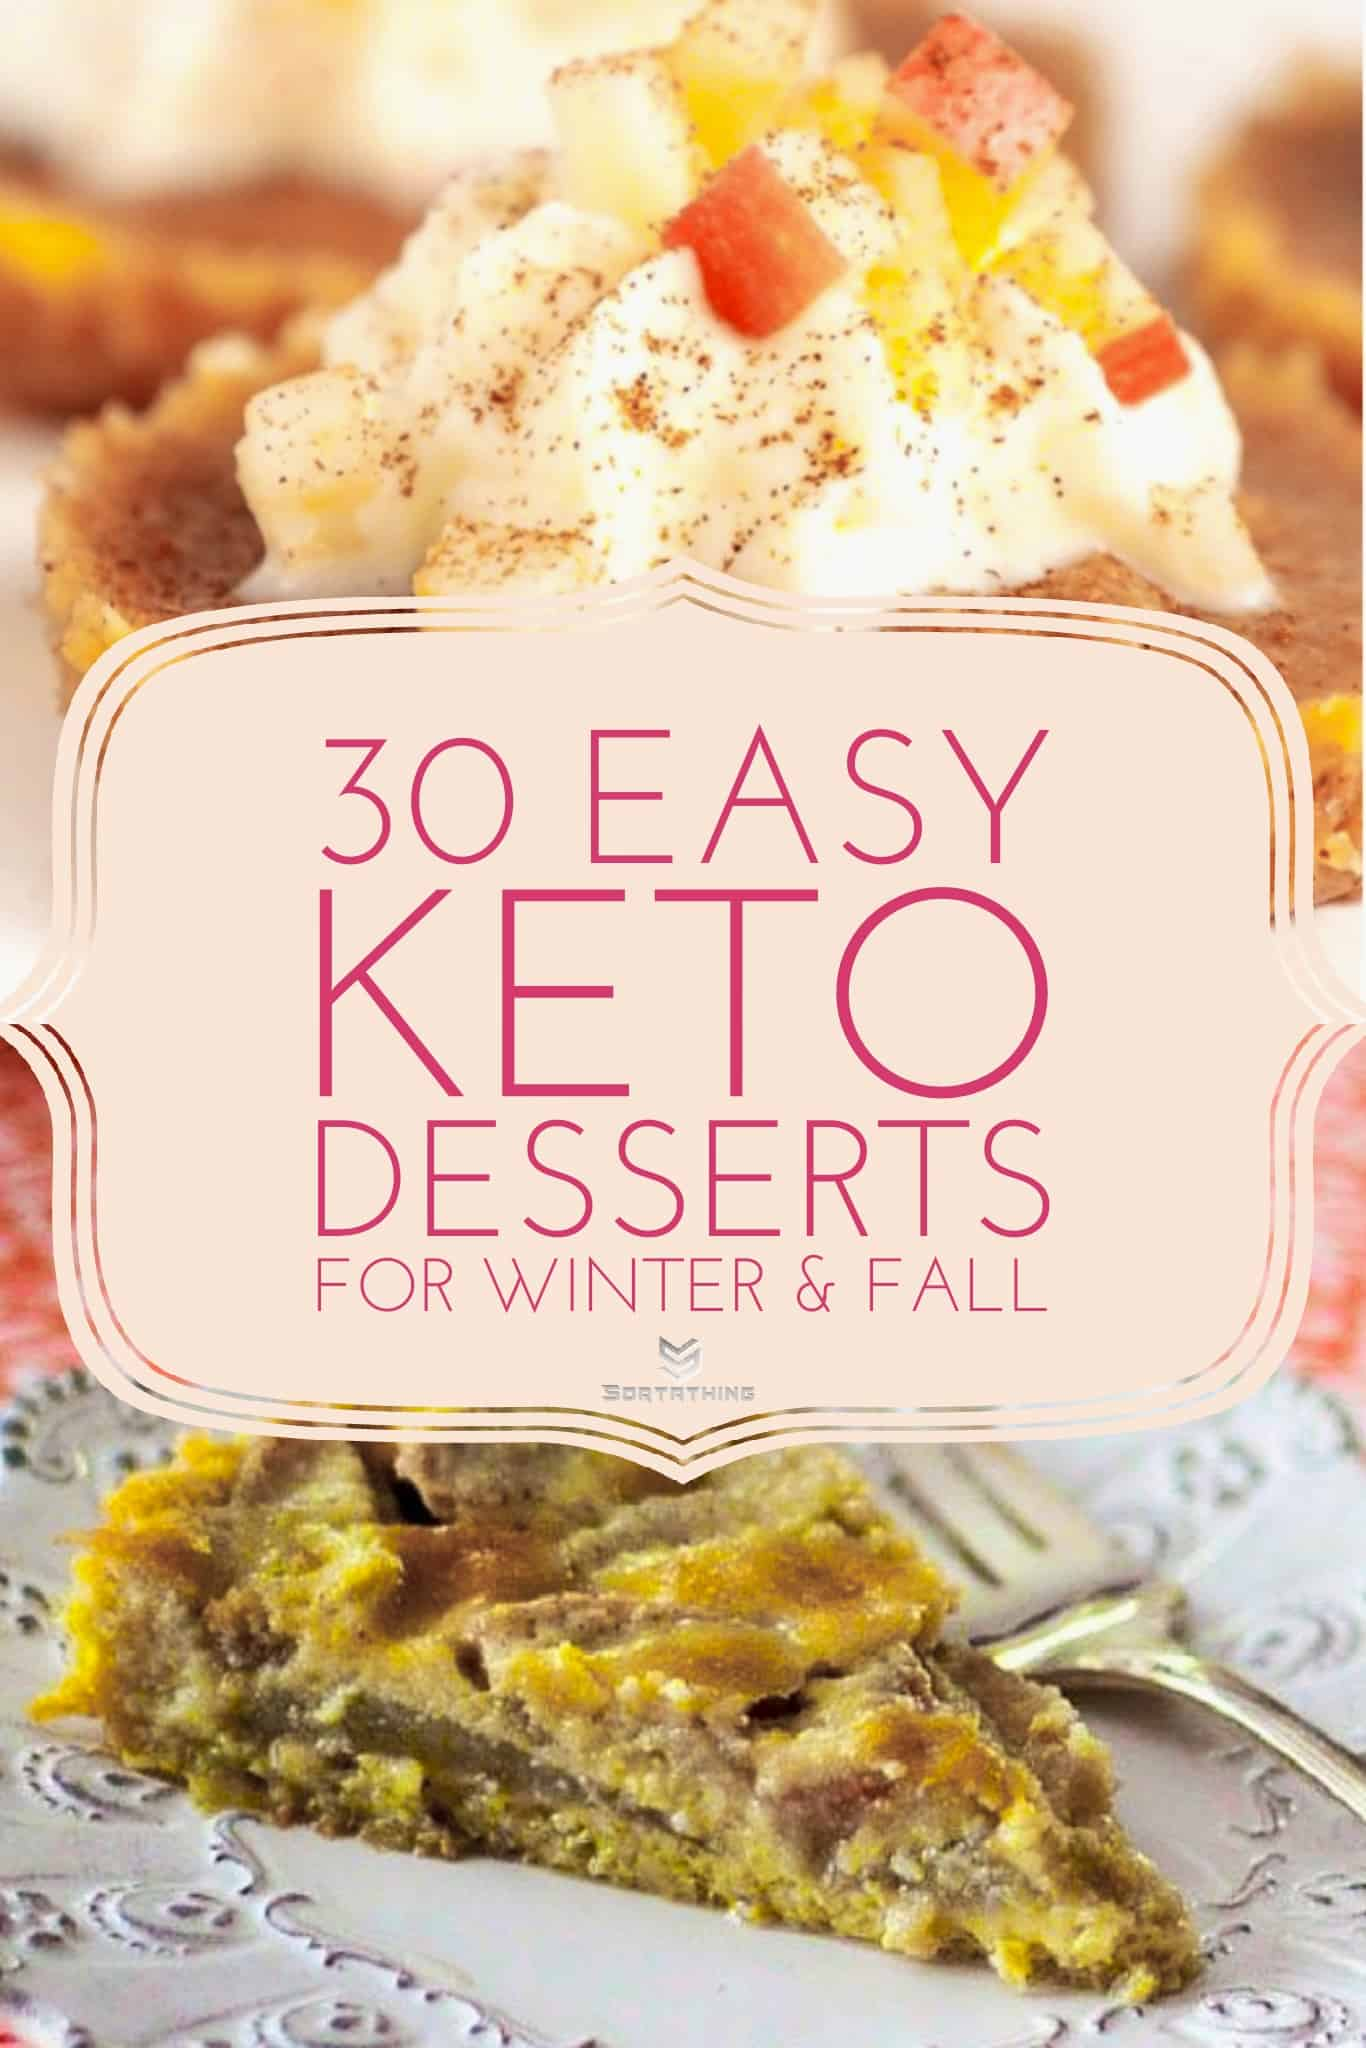 Keto Apple Pie Fat Bombs and Low-Carb Pear Custard Pie